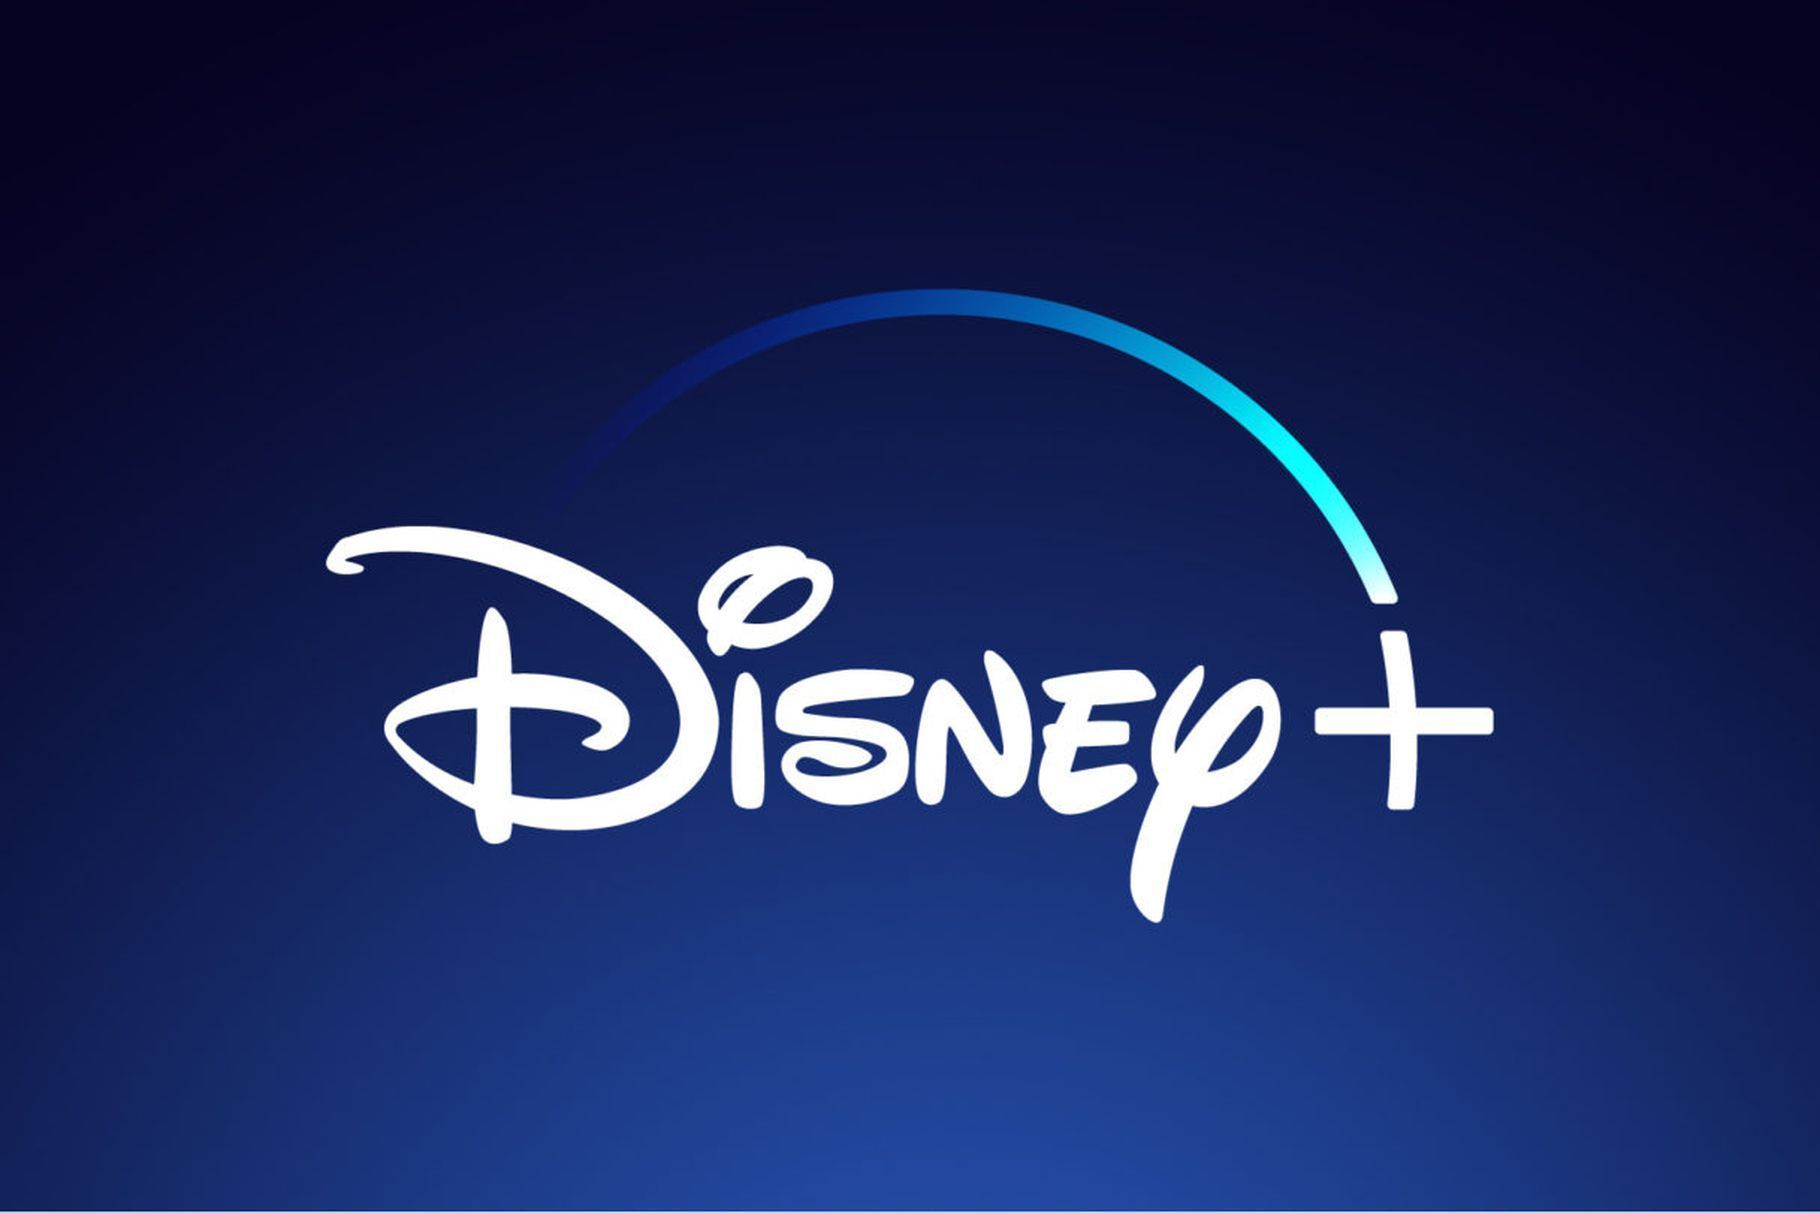 Disney Plus is officially live, bringing the Walt Disney Company right into the streaming services war.